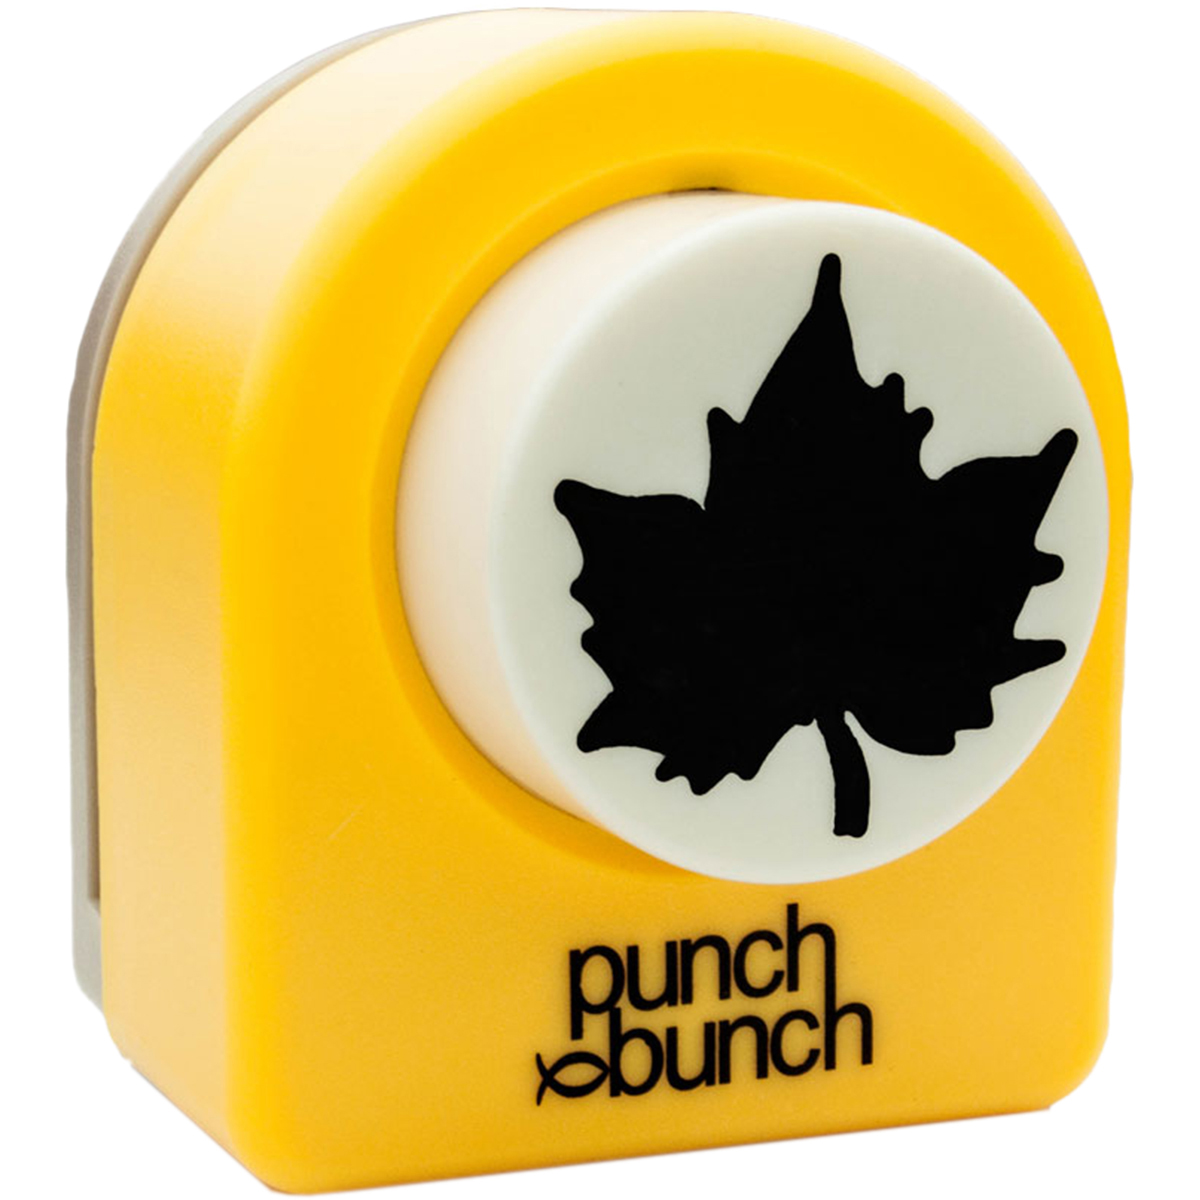 "Punch Bunch Large Punch Approx. 1.25""-Maple Leaf"